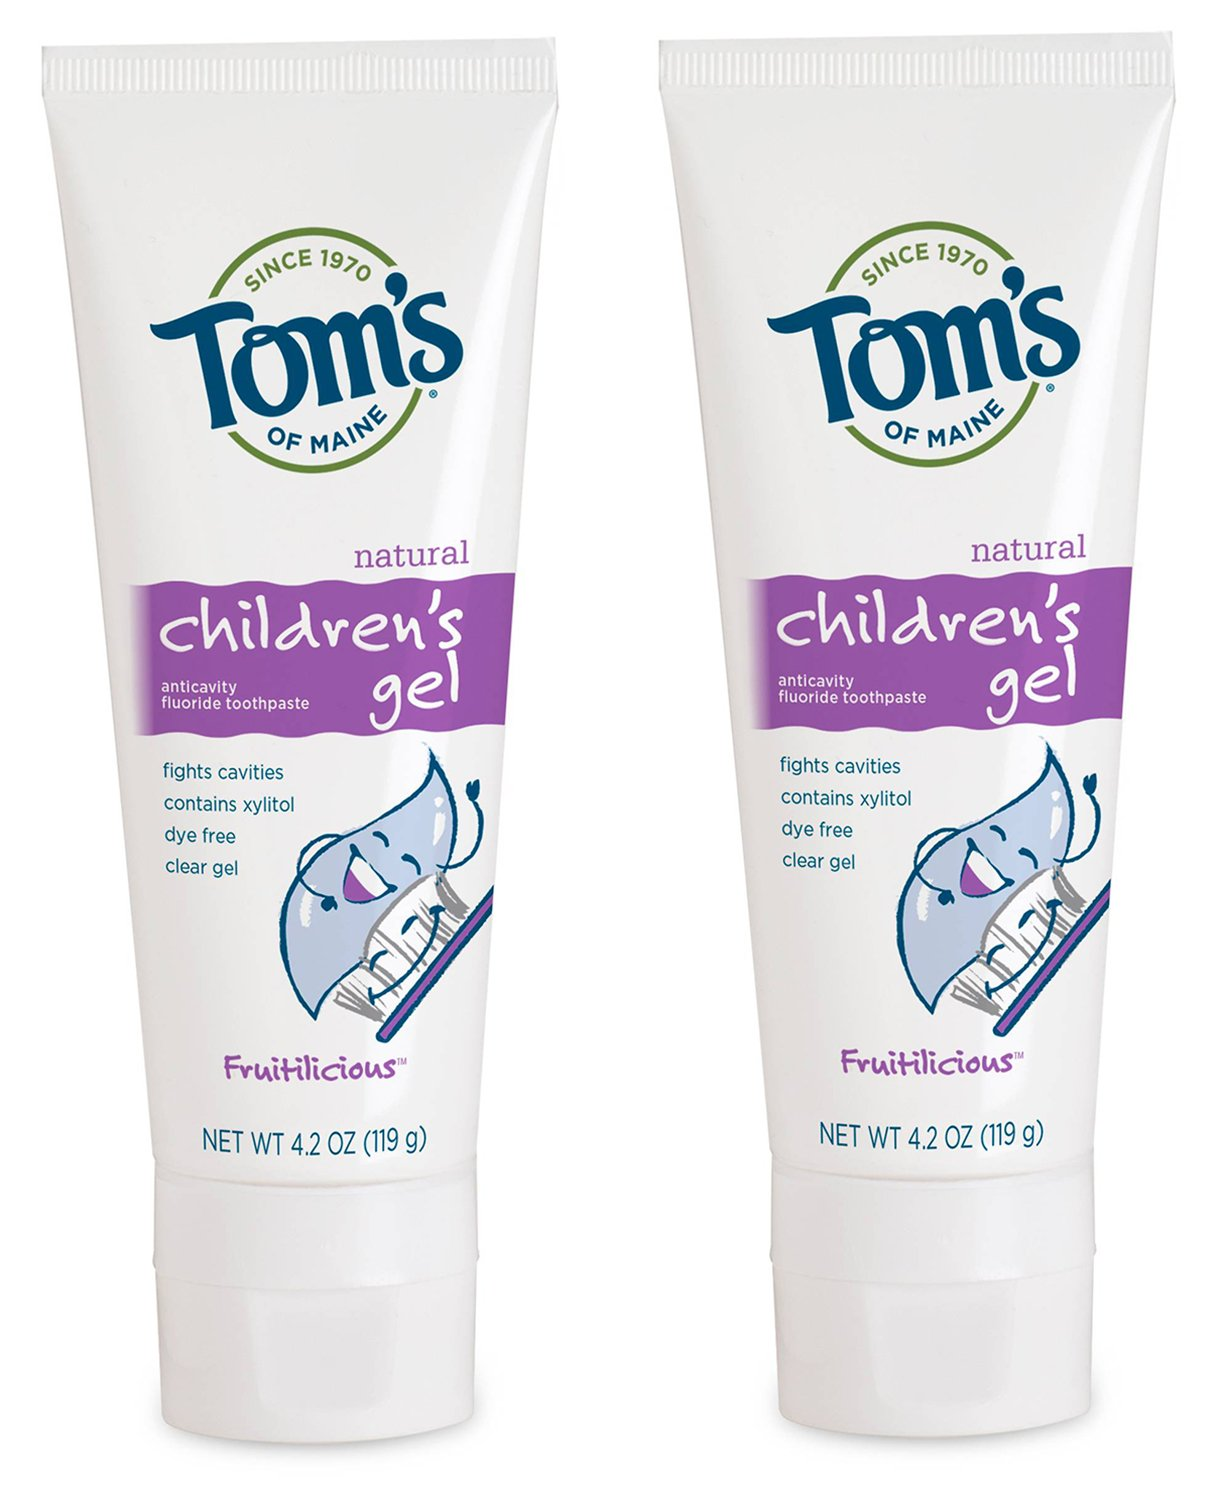 Tom's of Maine Natural Children's Toothpaste Fruitilicious Flavor (Pack of 2)